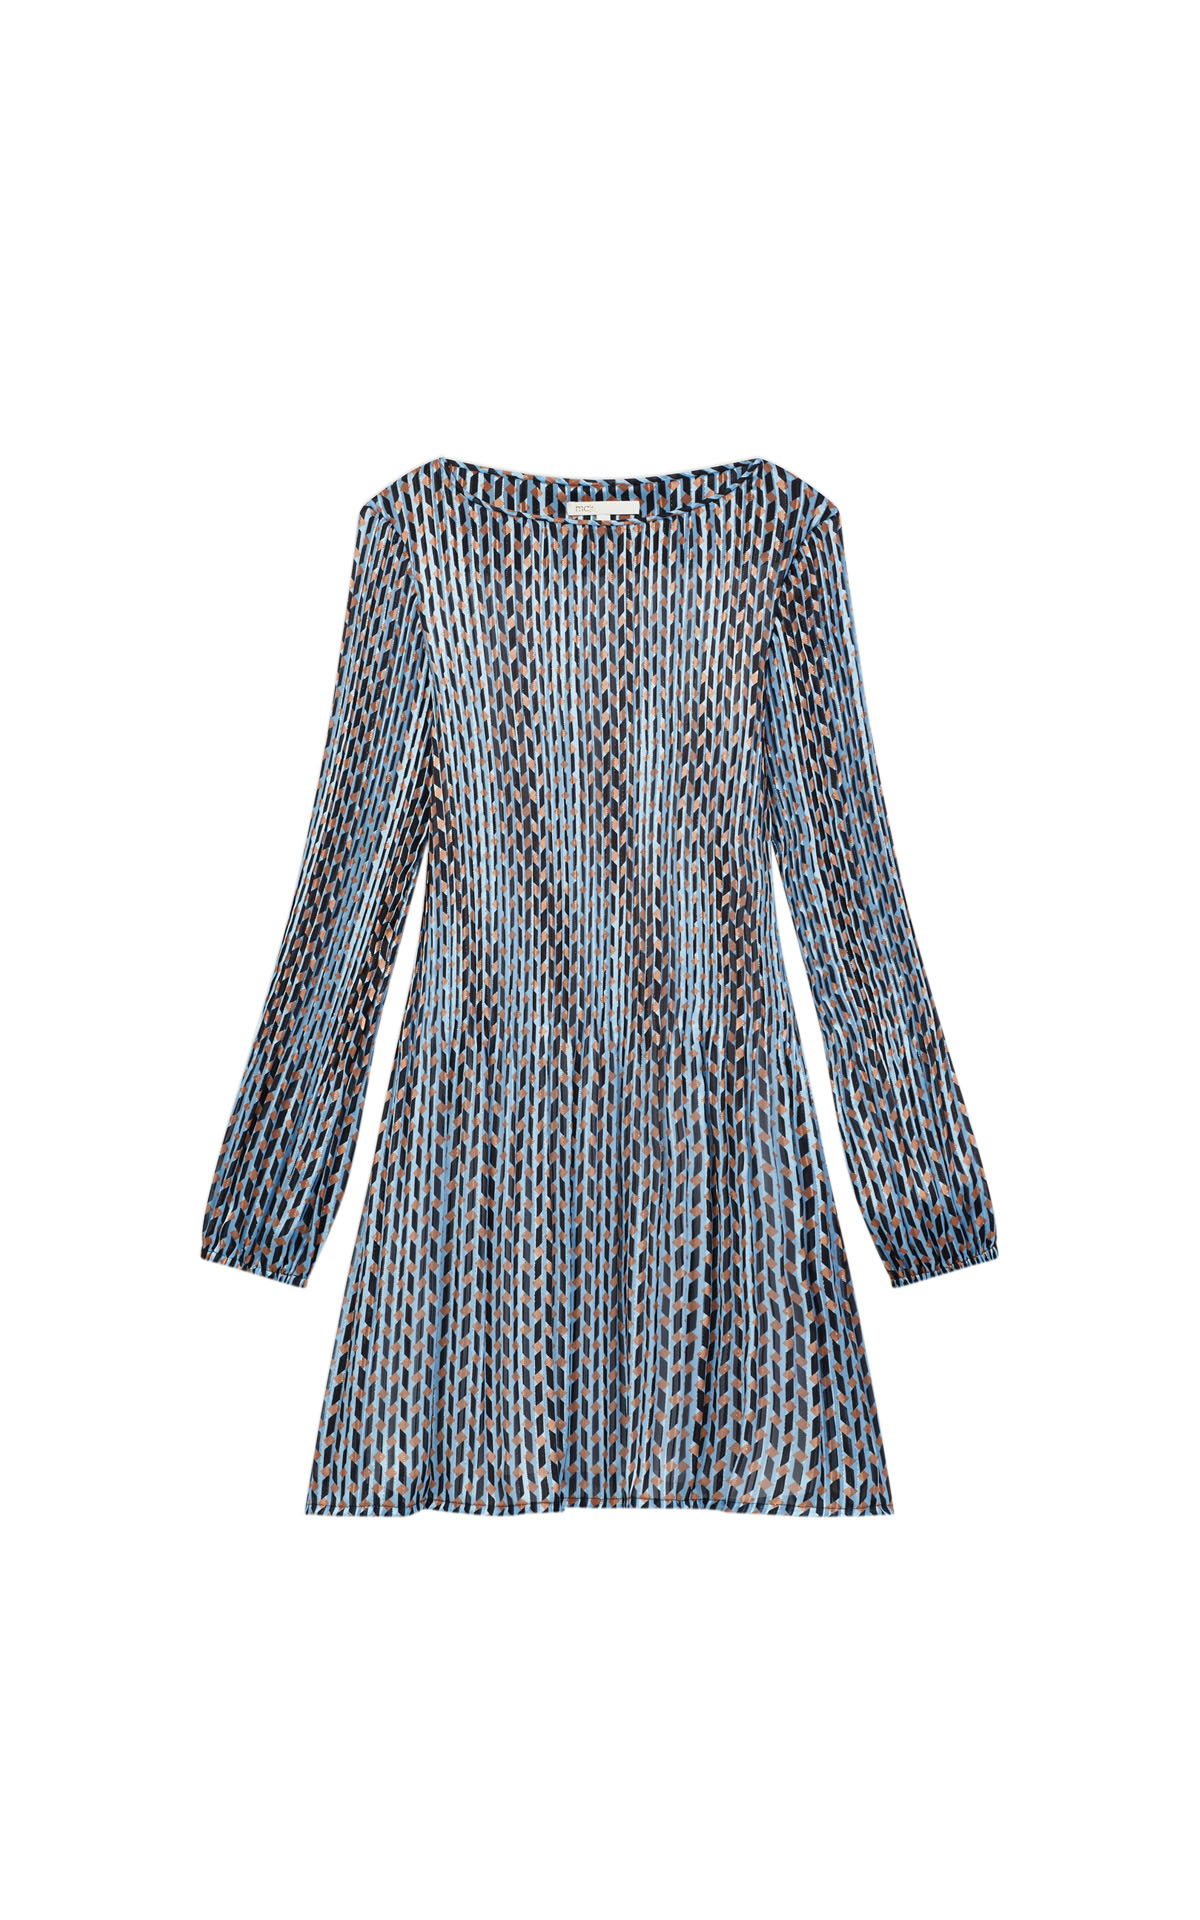 Maje pleated lurex jacquard print dress at The Bicester Village Shopping Collection